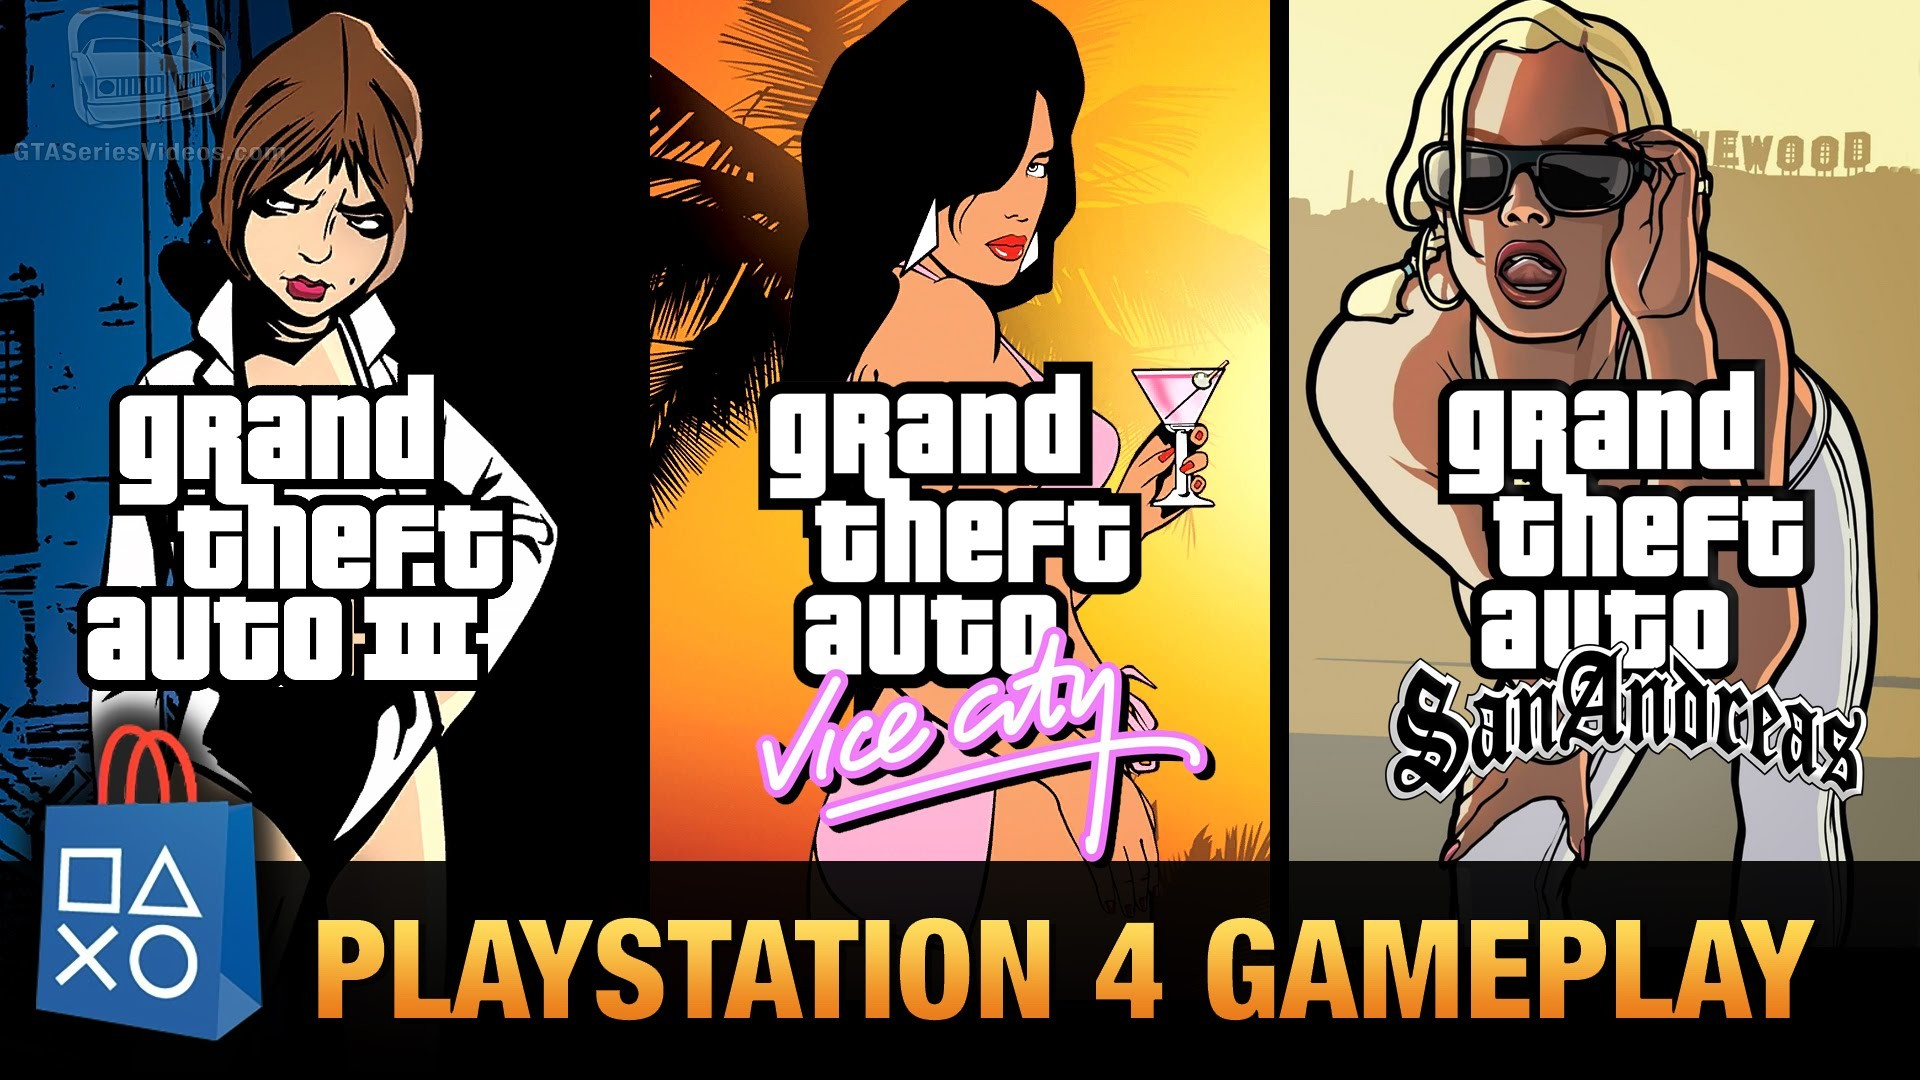 Gta 3 Wallpaper Posted By John Anderson